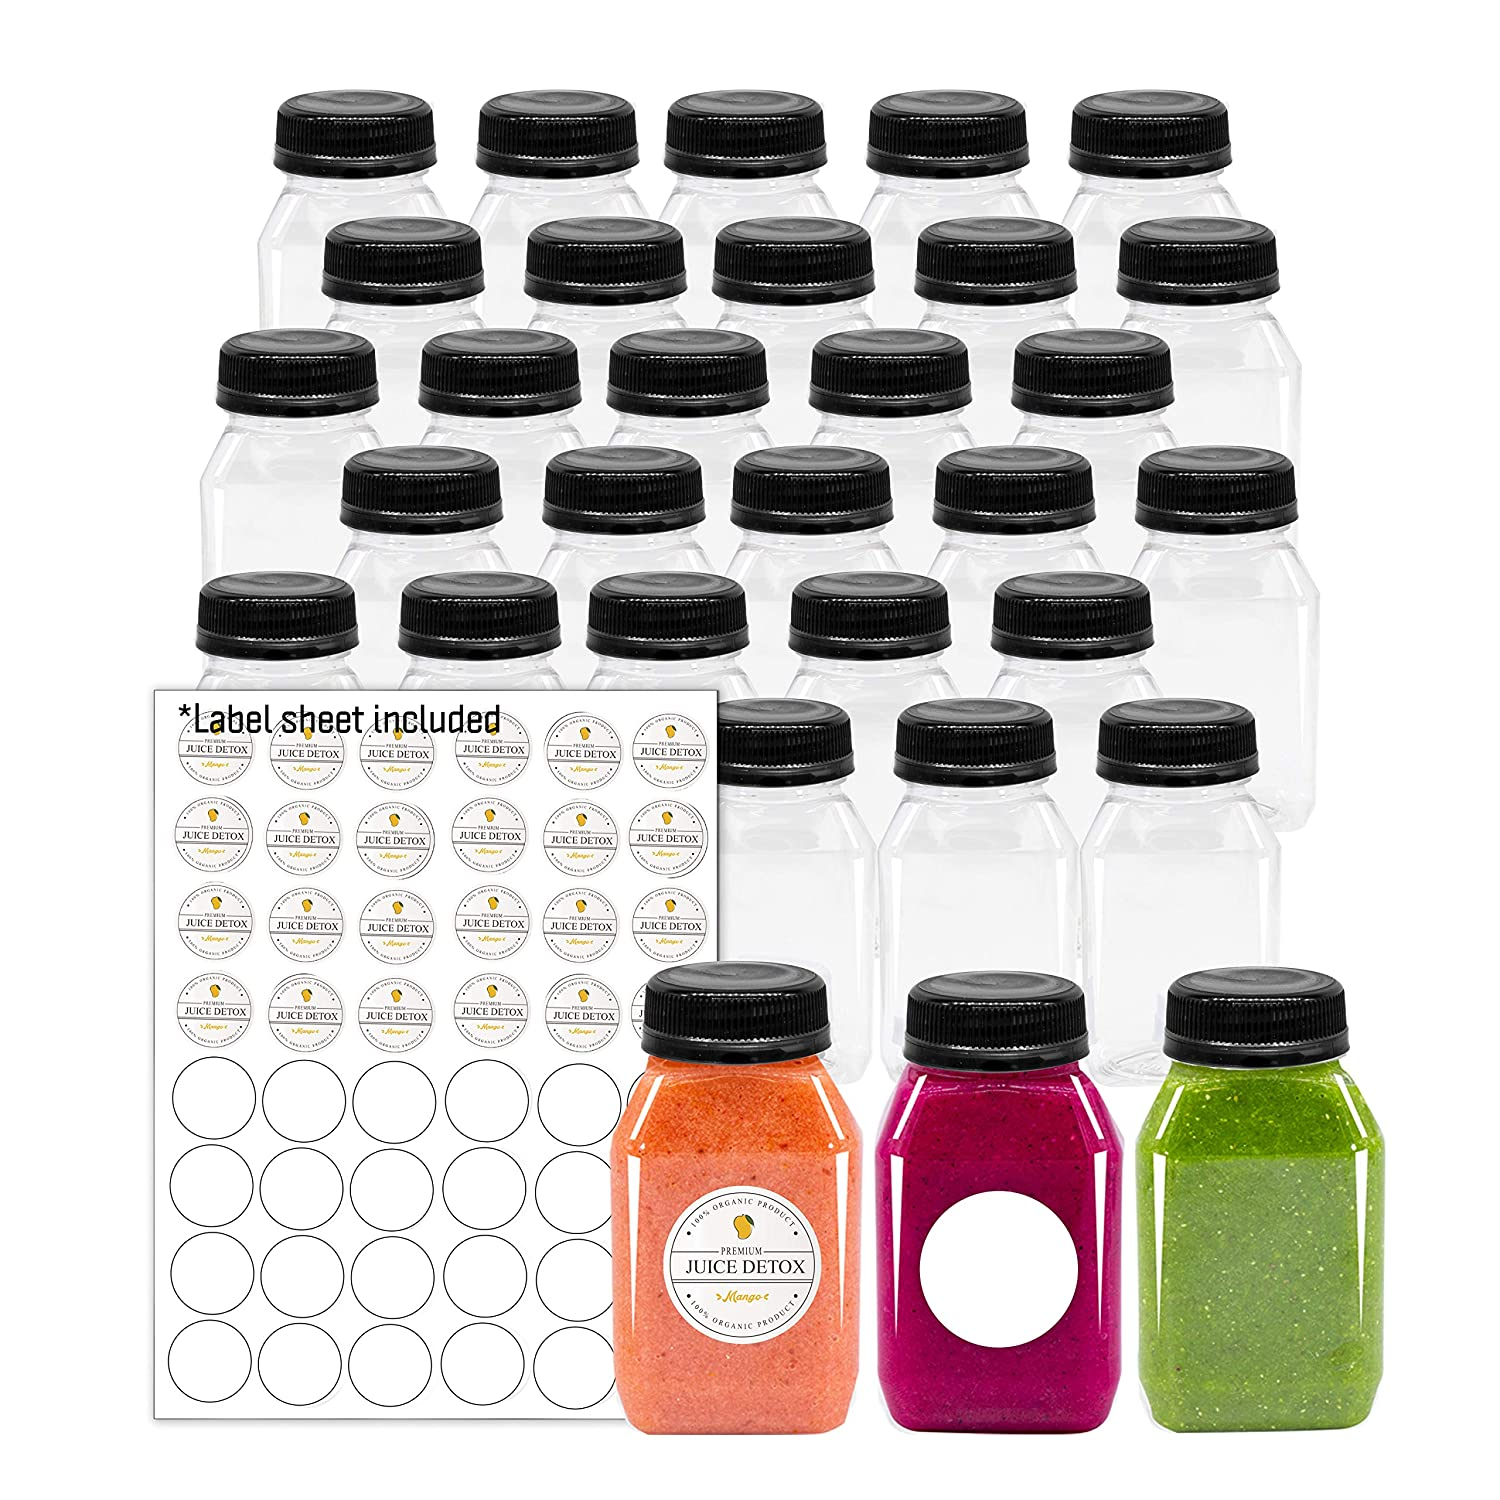 Empty PET Plastic Juice Bottles - Pack of 35 Reusable Clear Disposable Milk Bulk Containers with Labels and Tamper Evident Caps (4 OZ, Black)